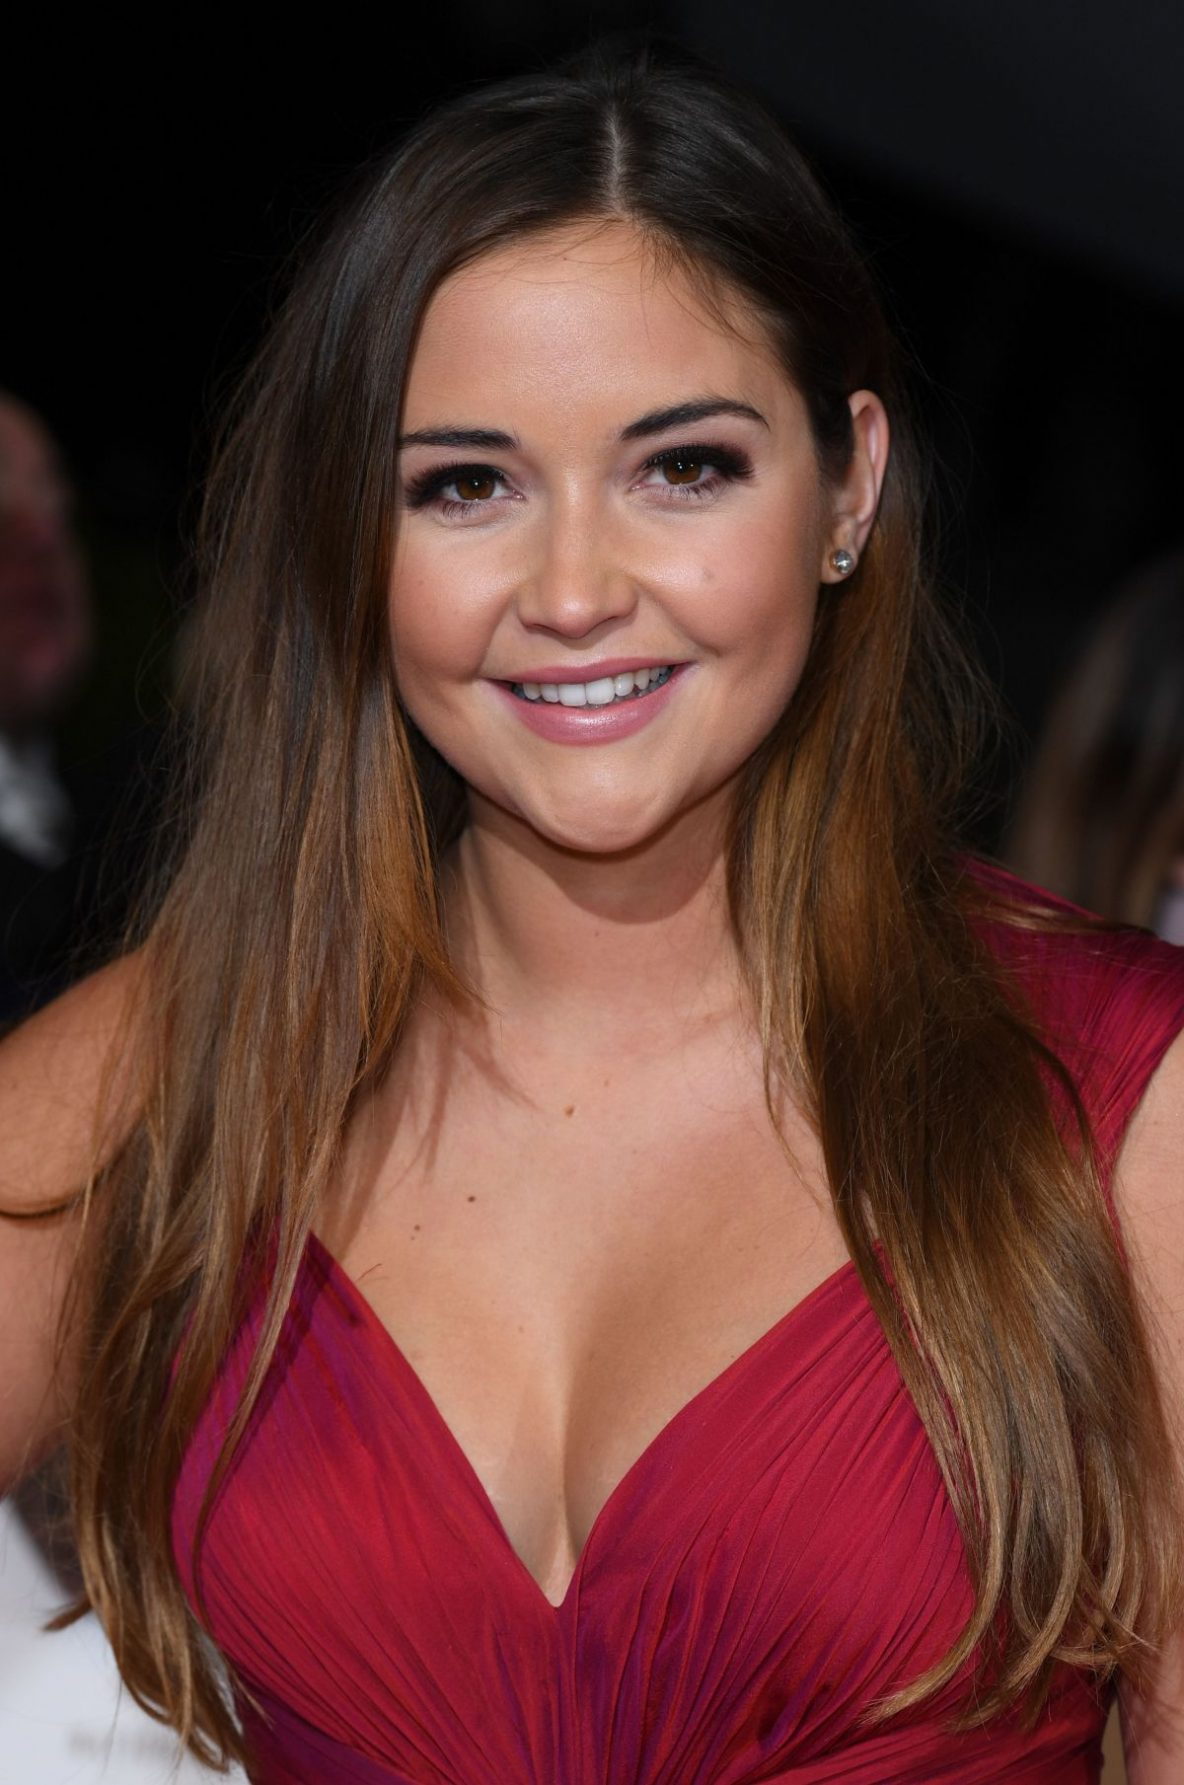 jacqueline jossa pregnancy 4D scan window to the womb